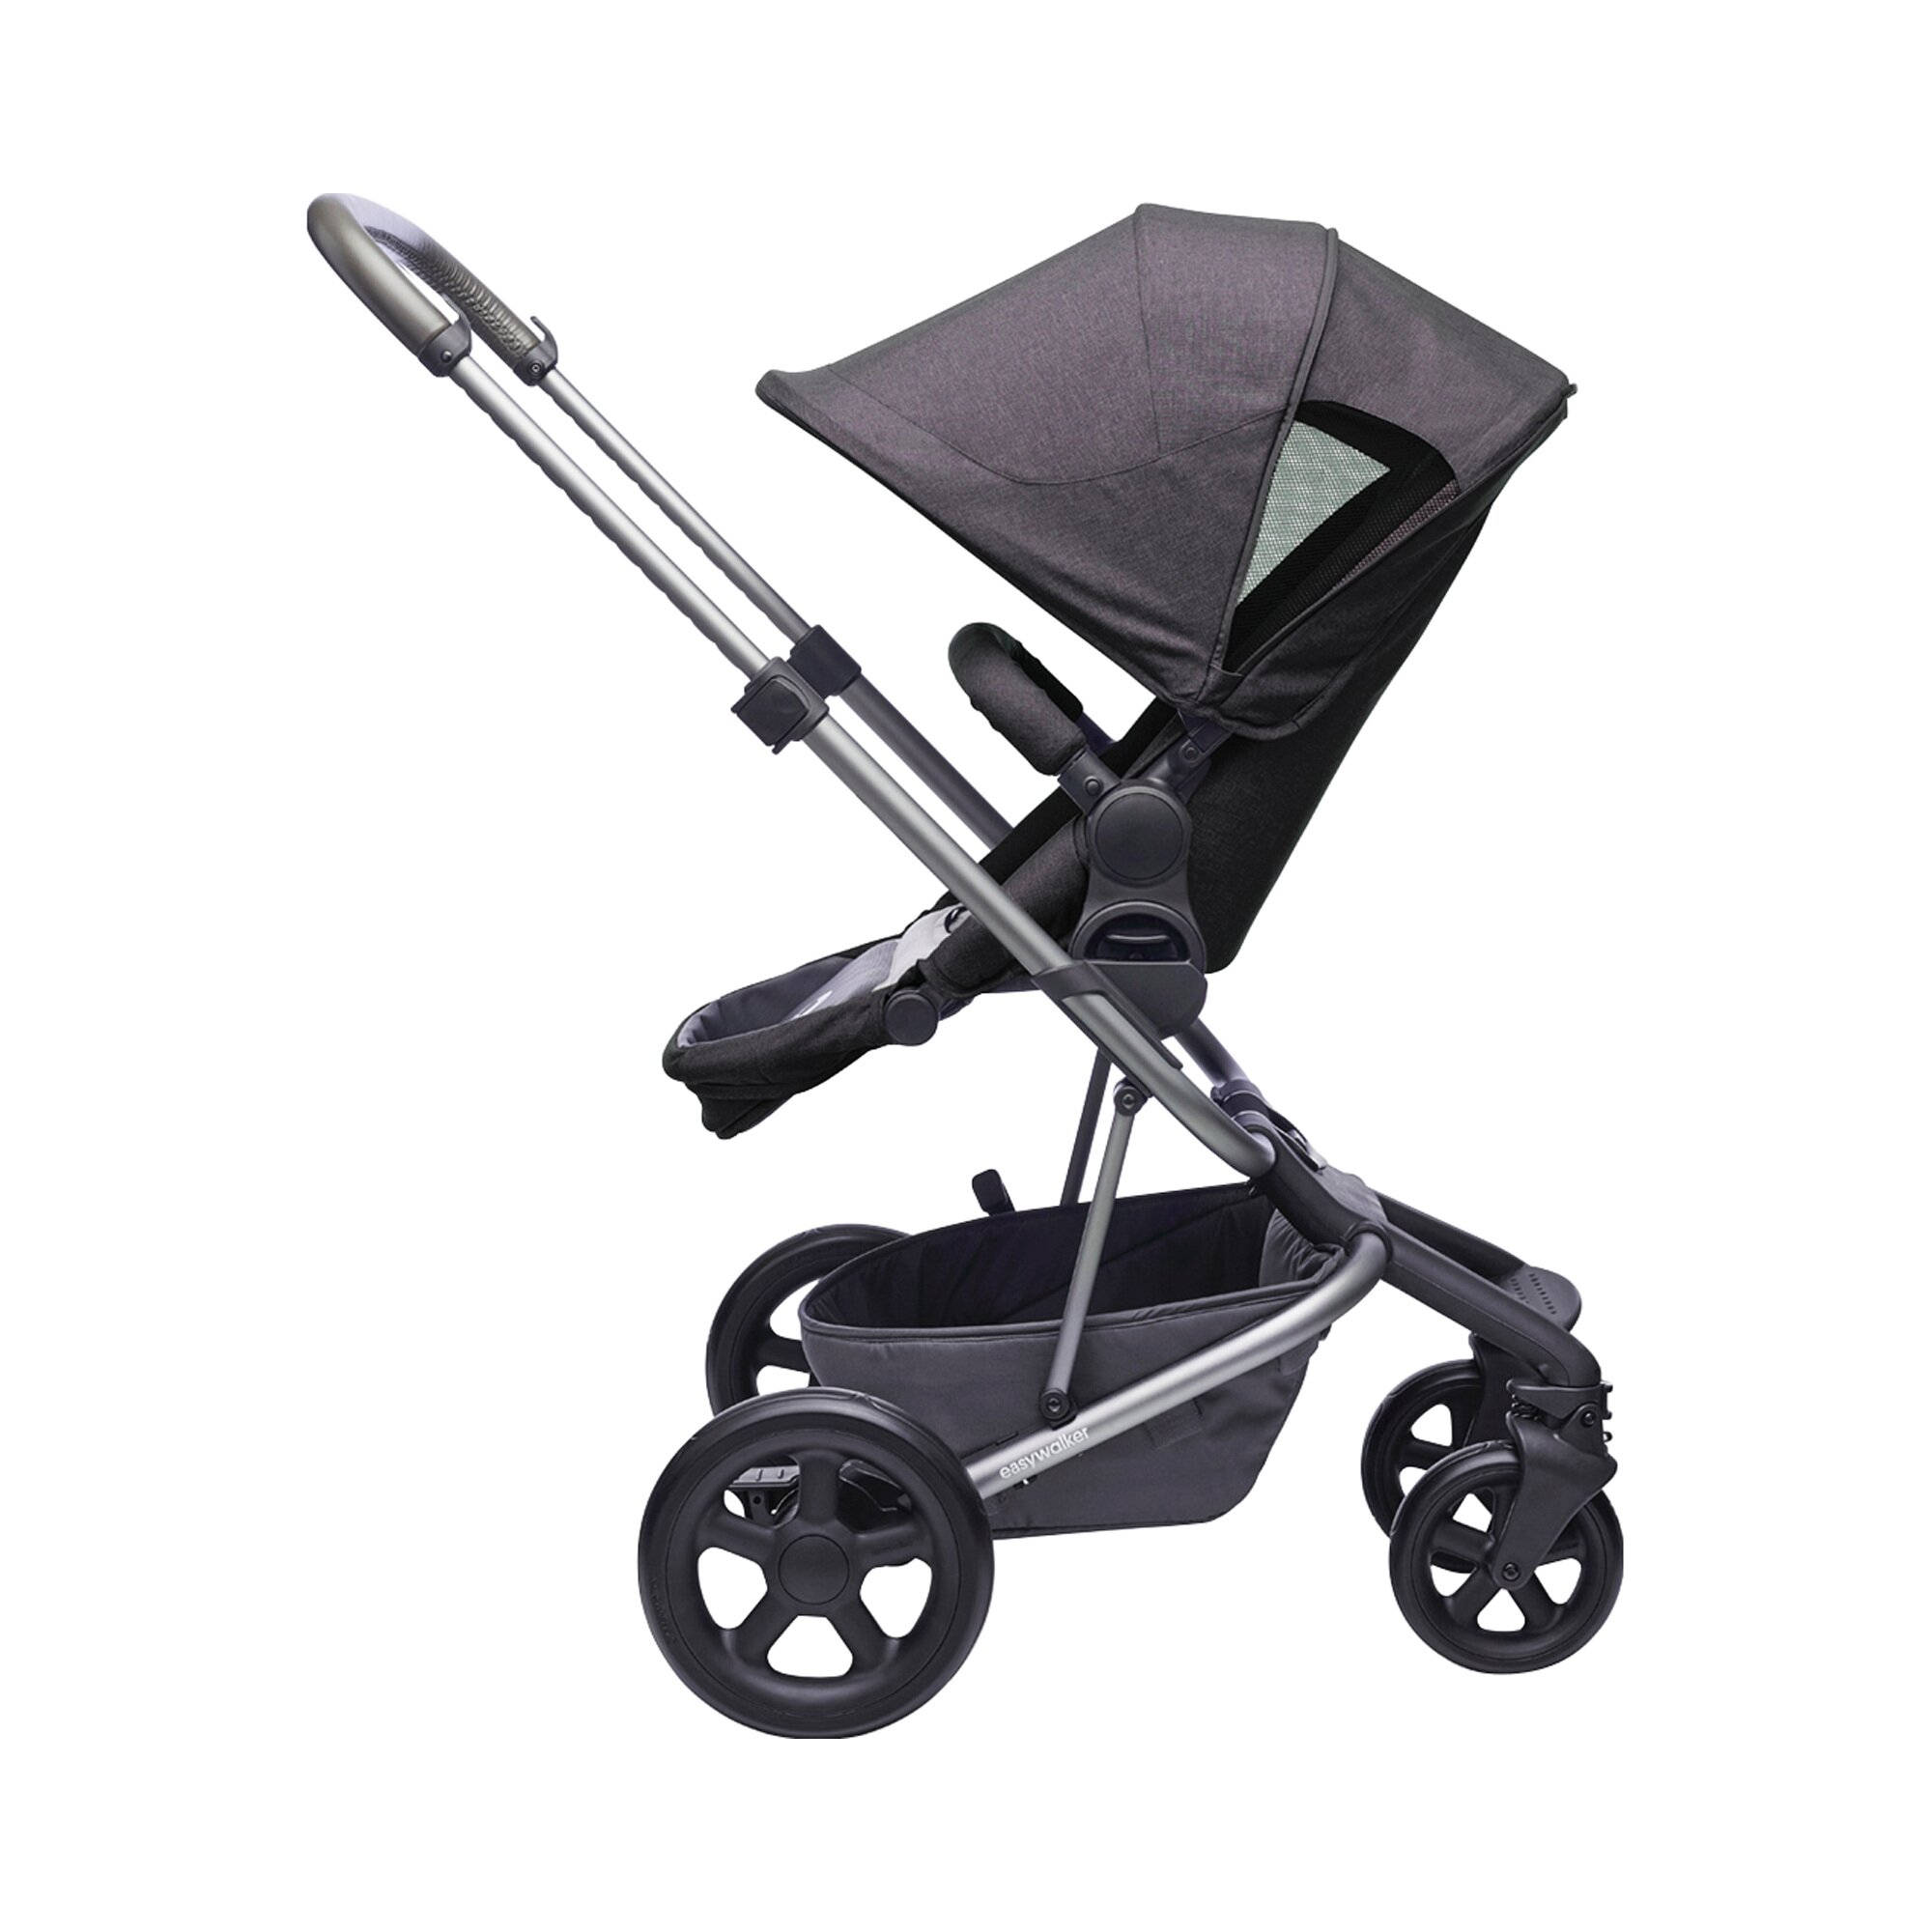 easywalker-harvey-kinderwagen-design-2017-schwarz